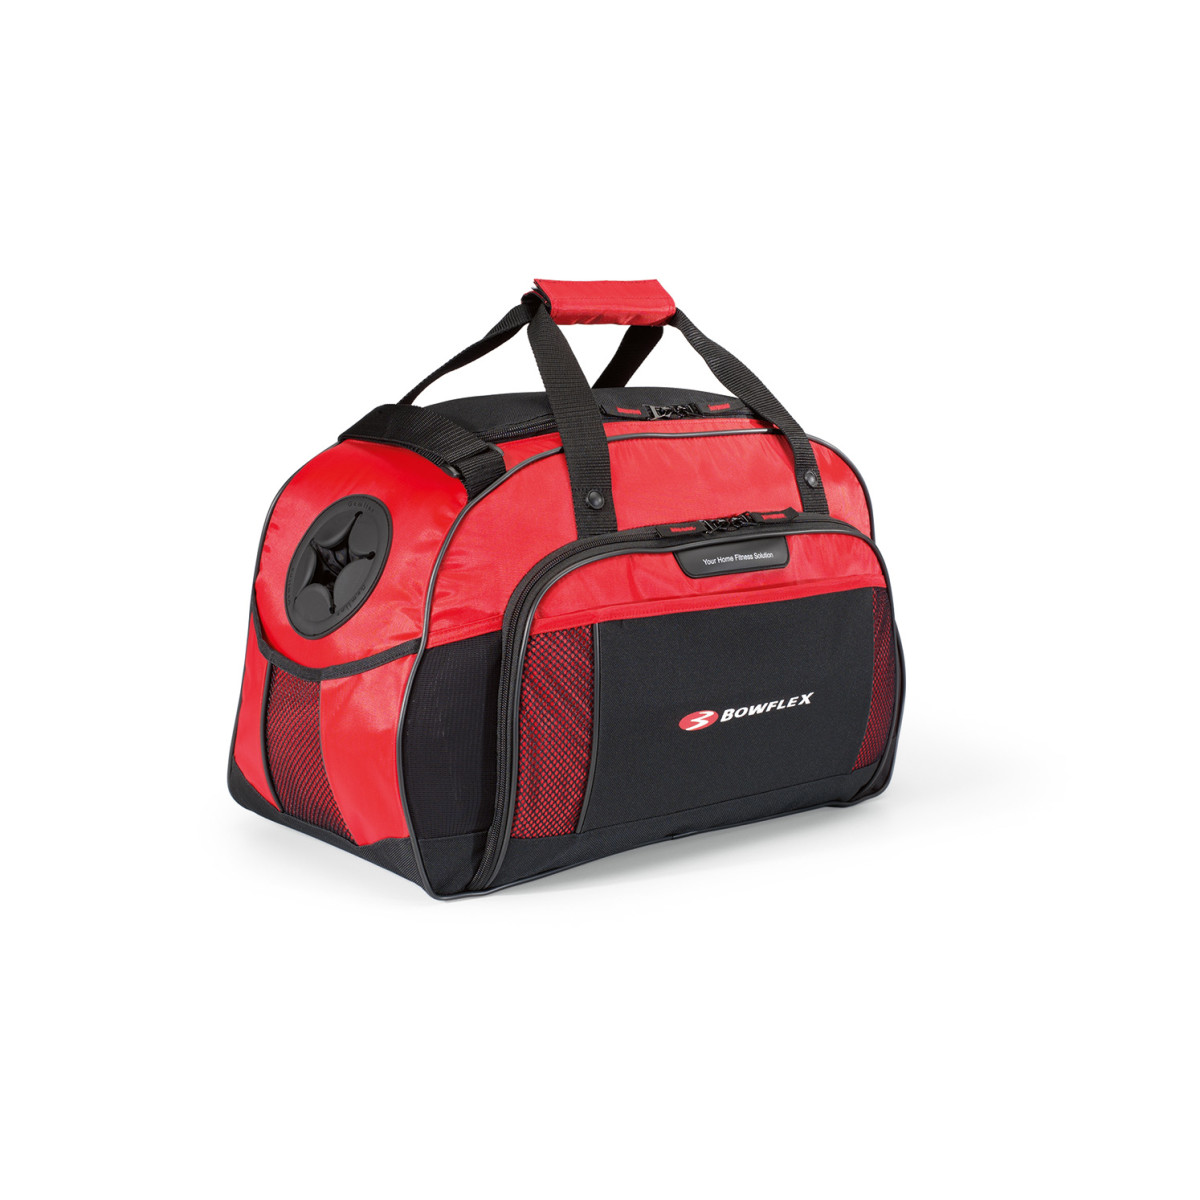 Gemline 6882 - Ultimate Sport Bag II